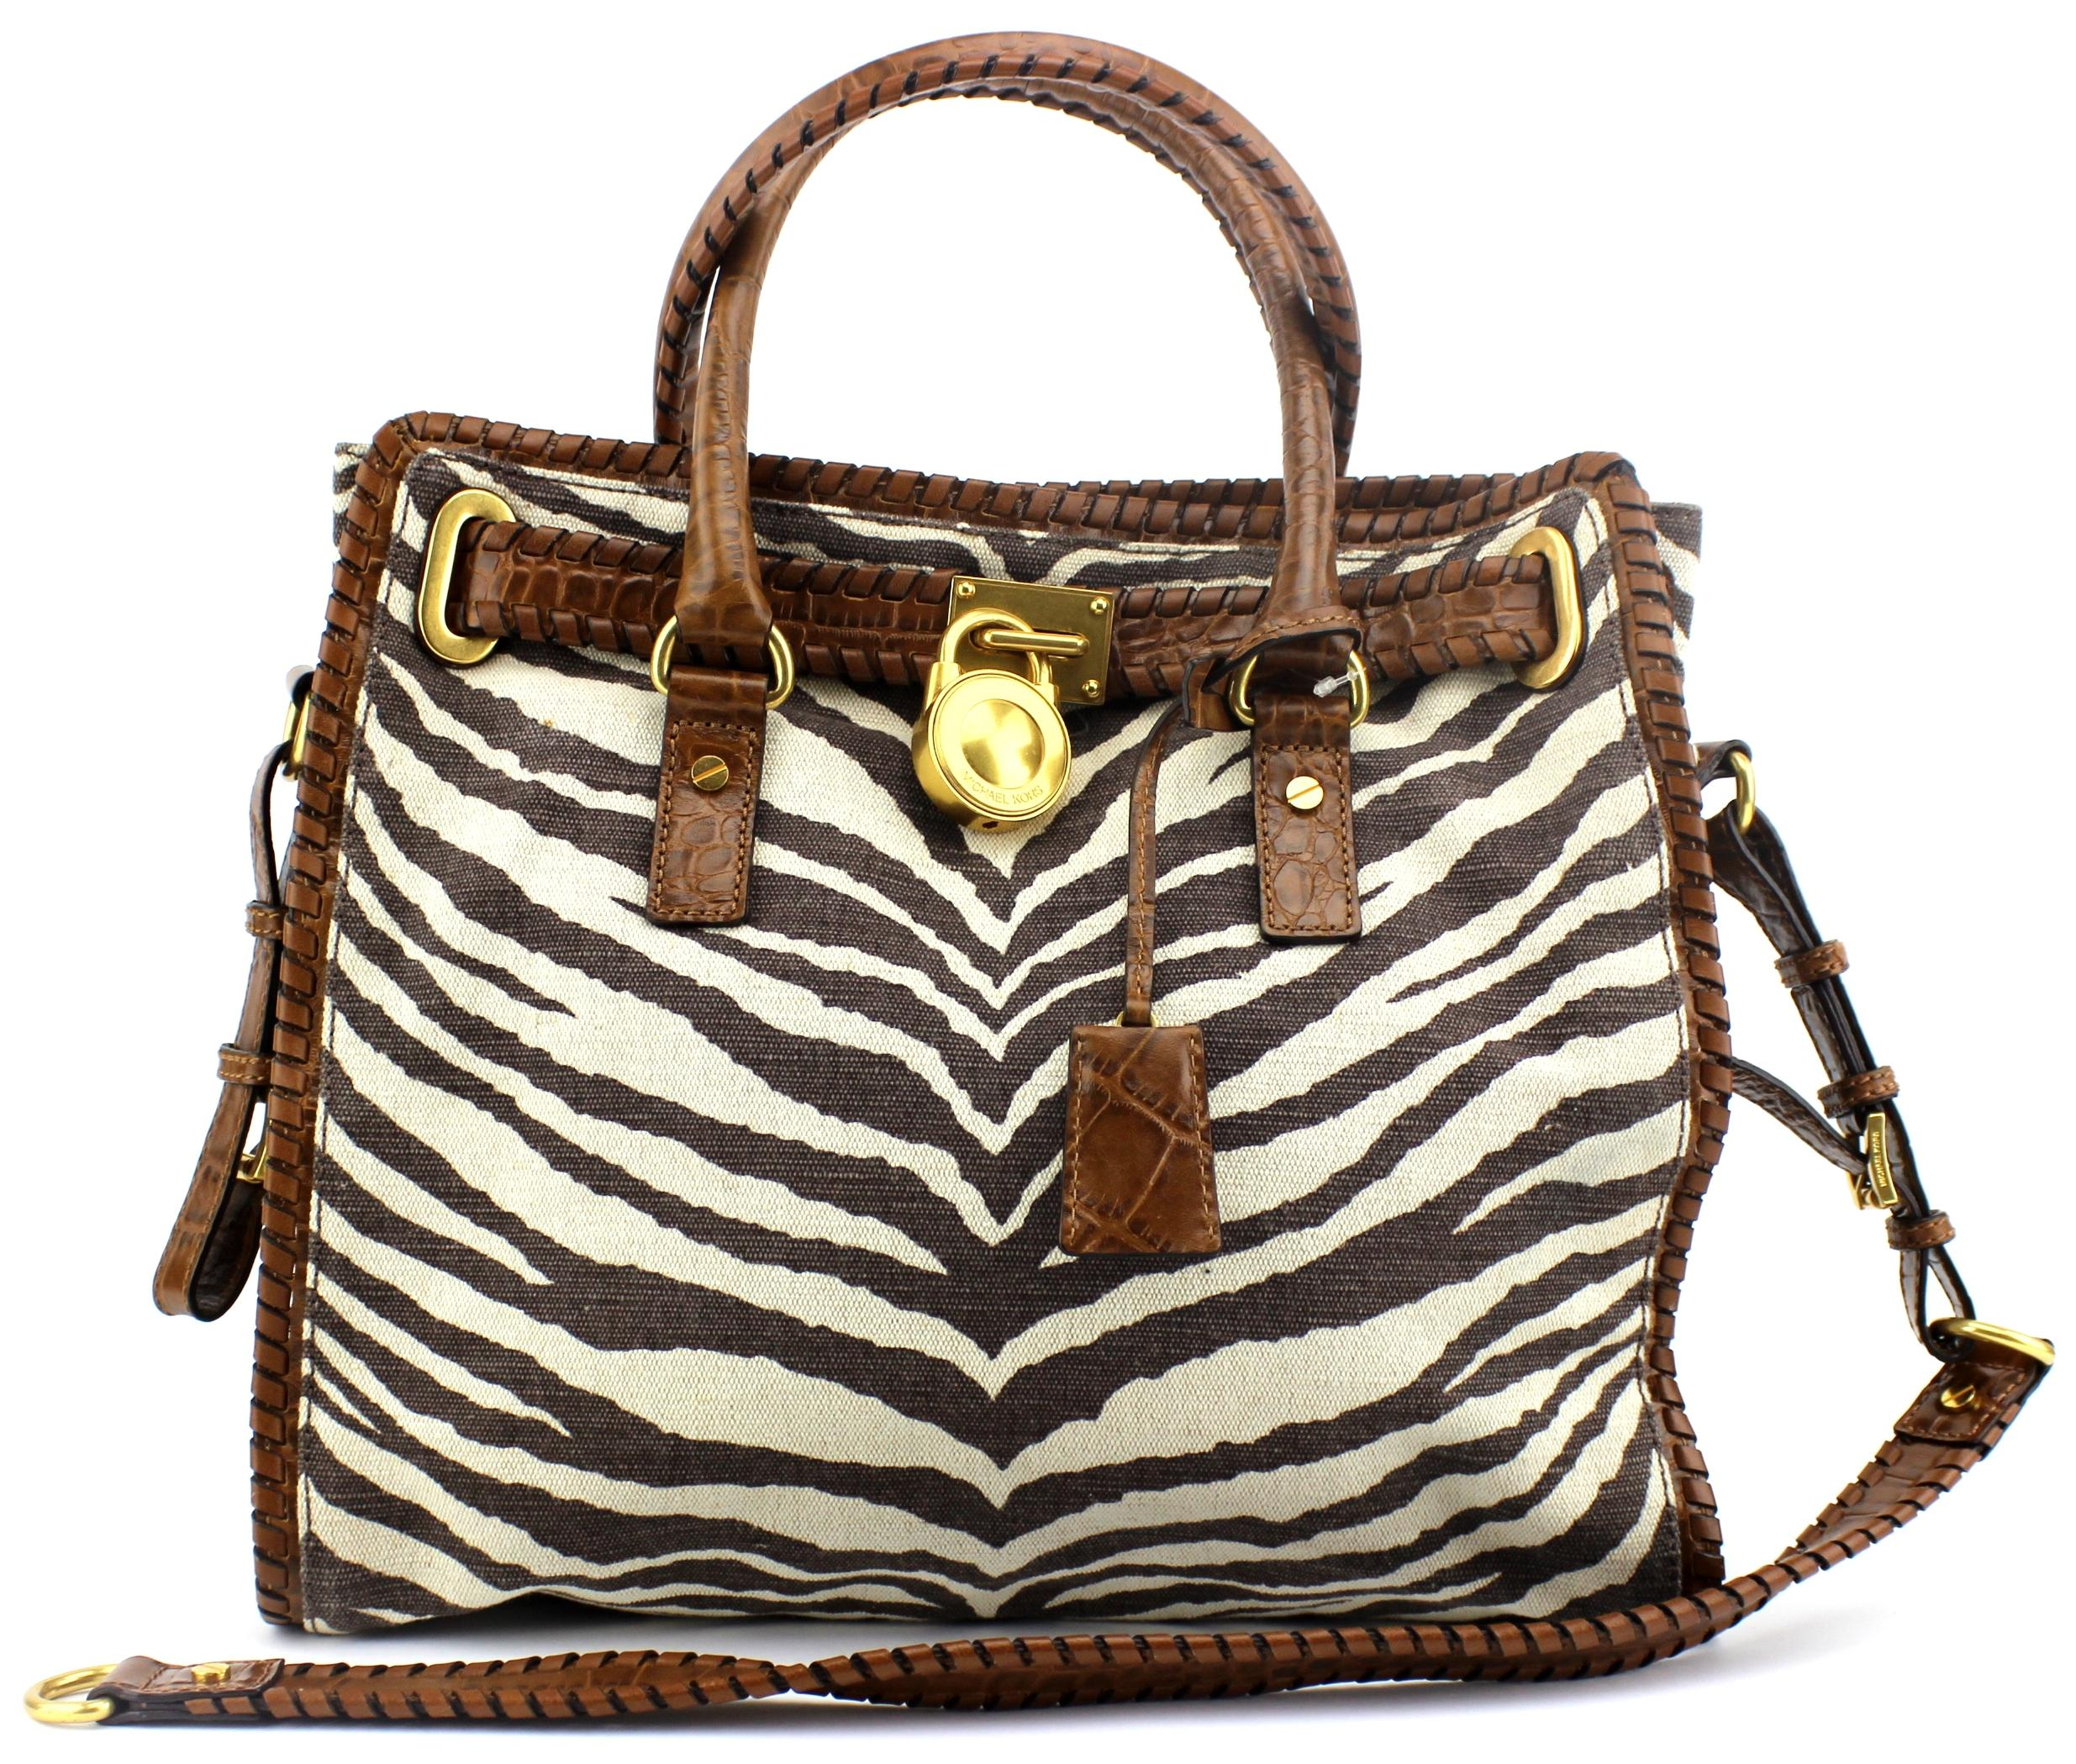 4243e0c10bb8 ... order michael kors hamilton tiger animal print large brown canvas leather  tote tradesy 27240 17fe9